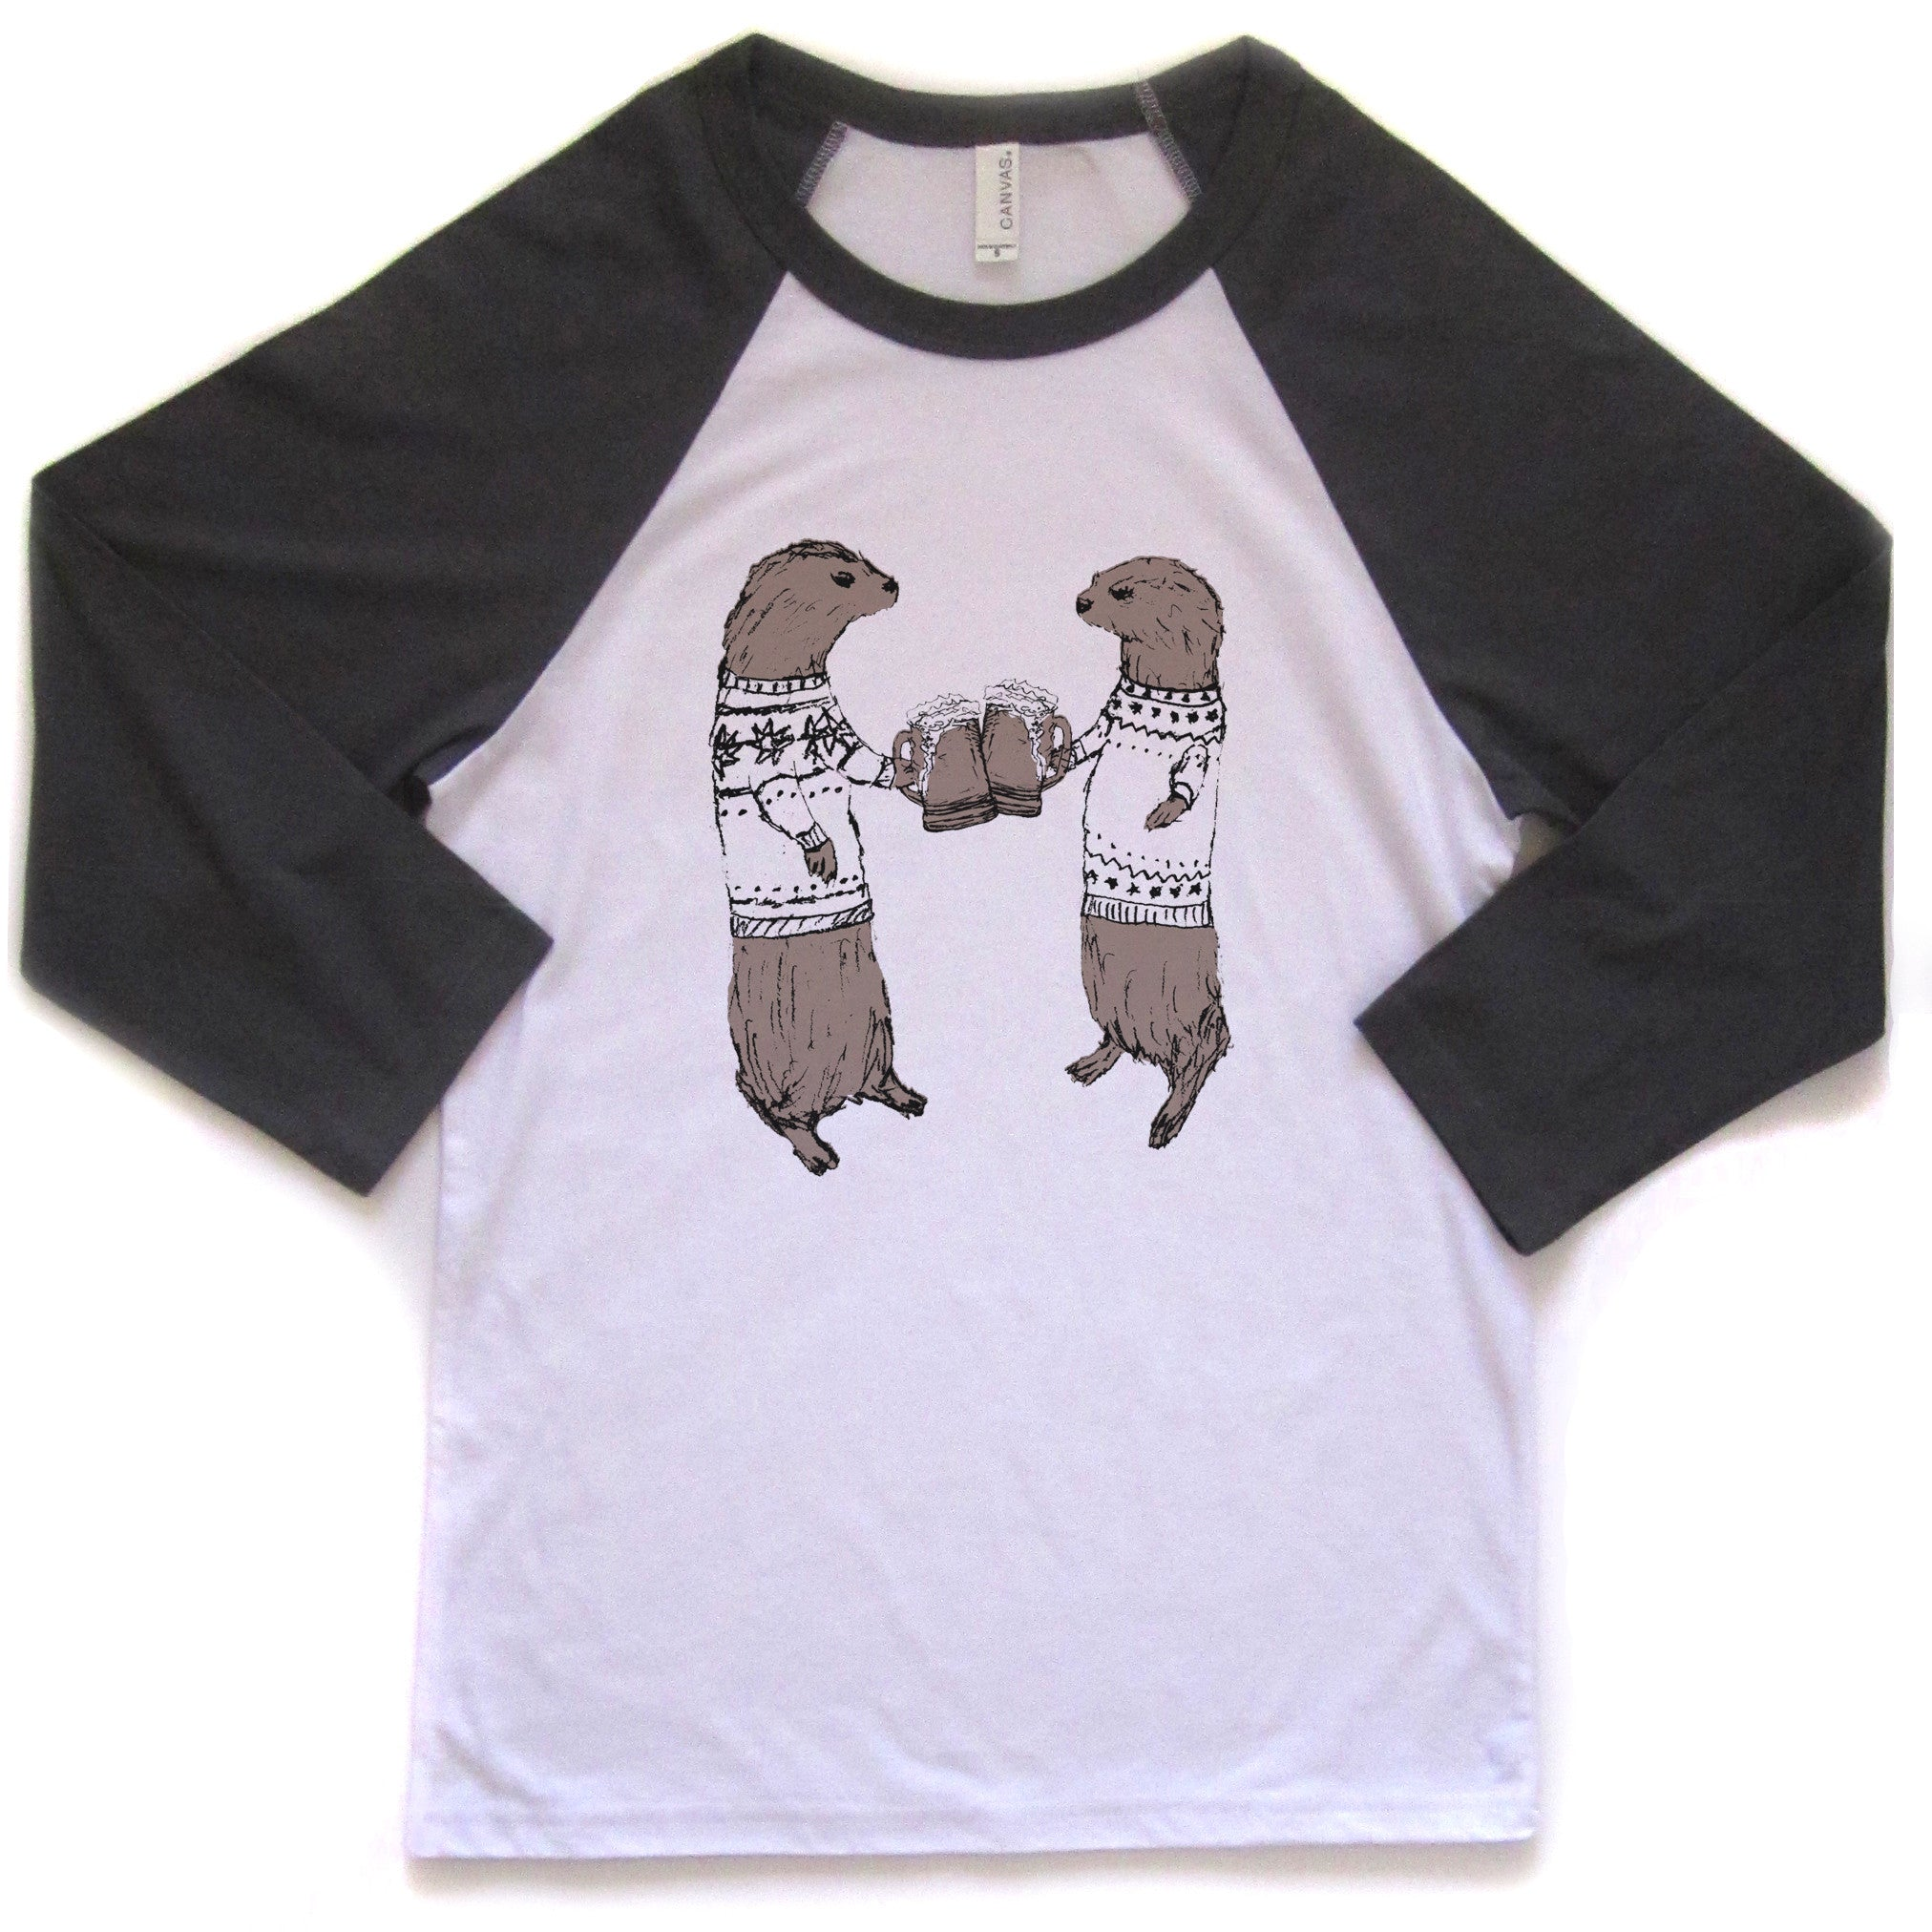 Otters : unisex baseball tee, Unisex Apparel - Megan Lee Designs